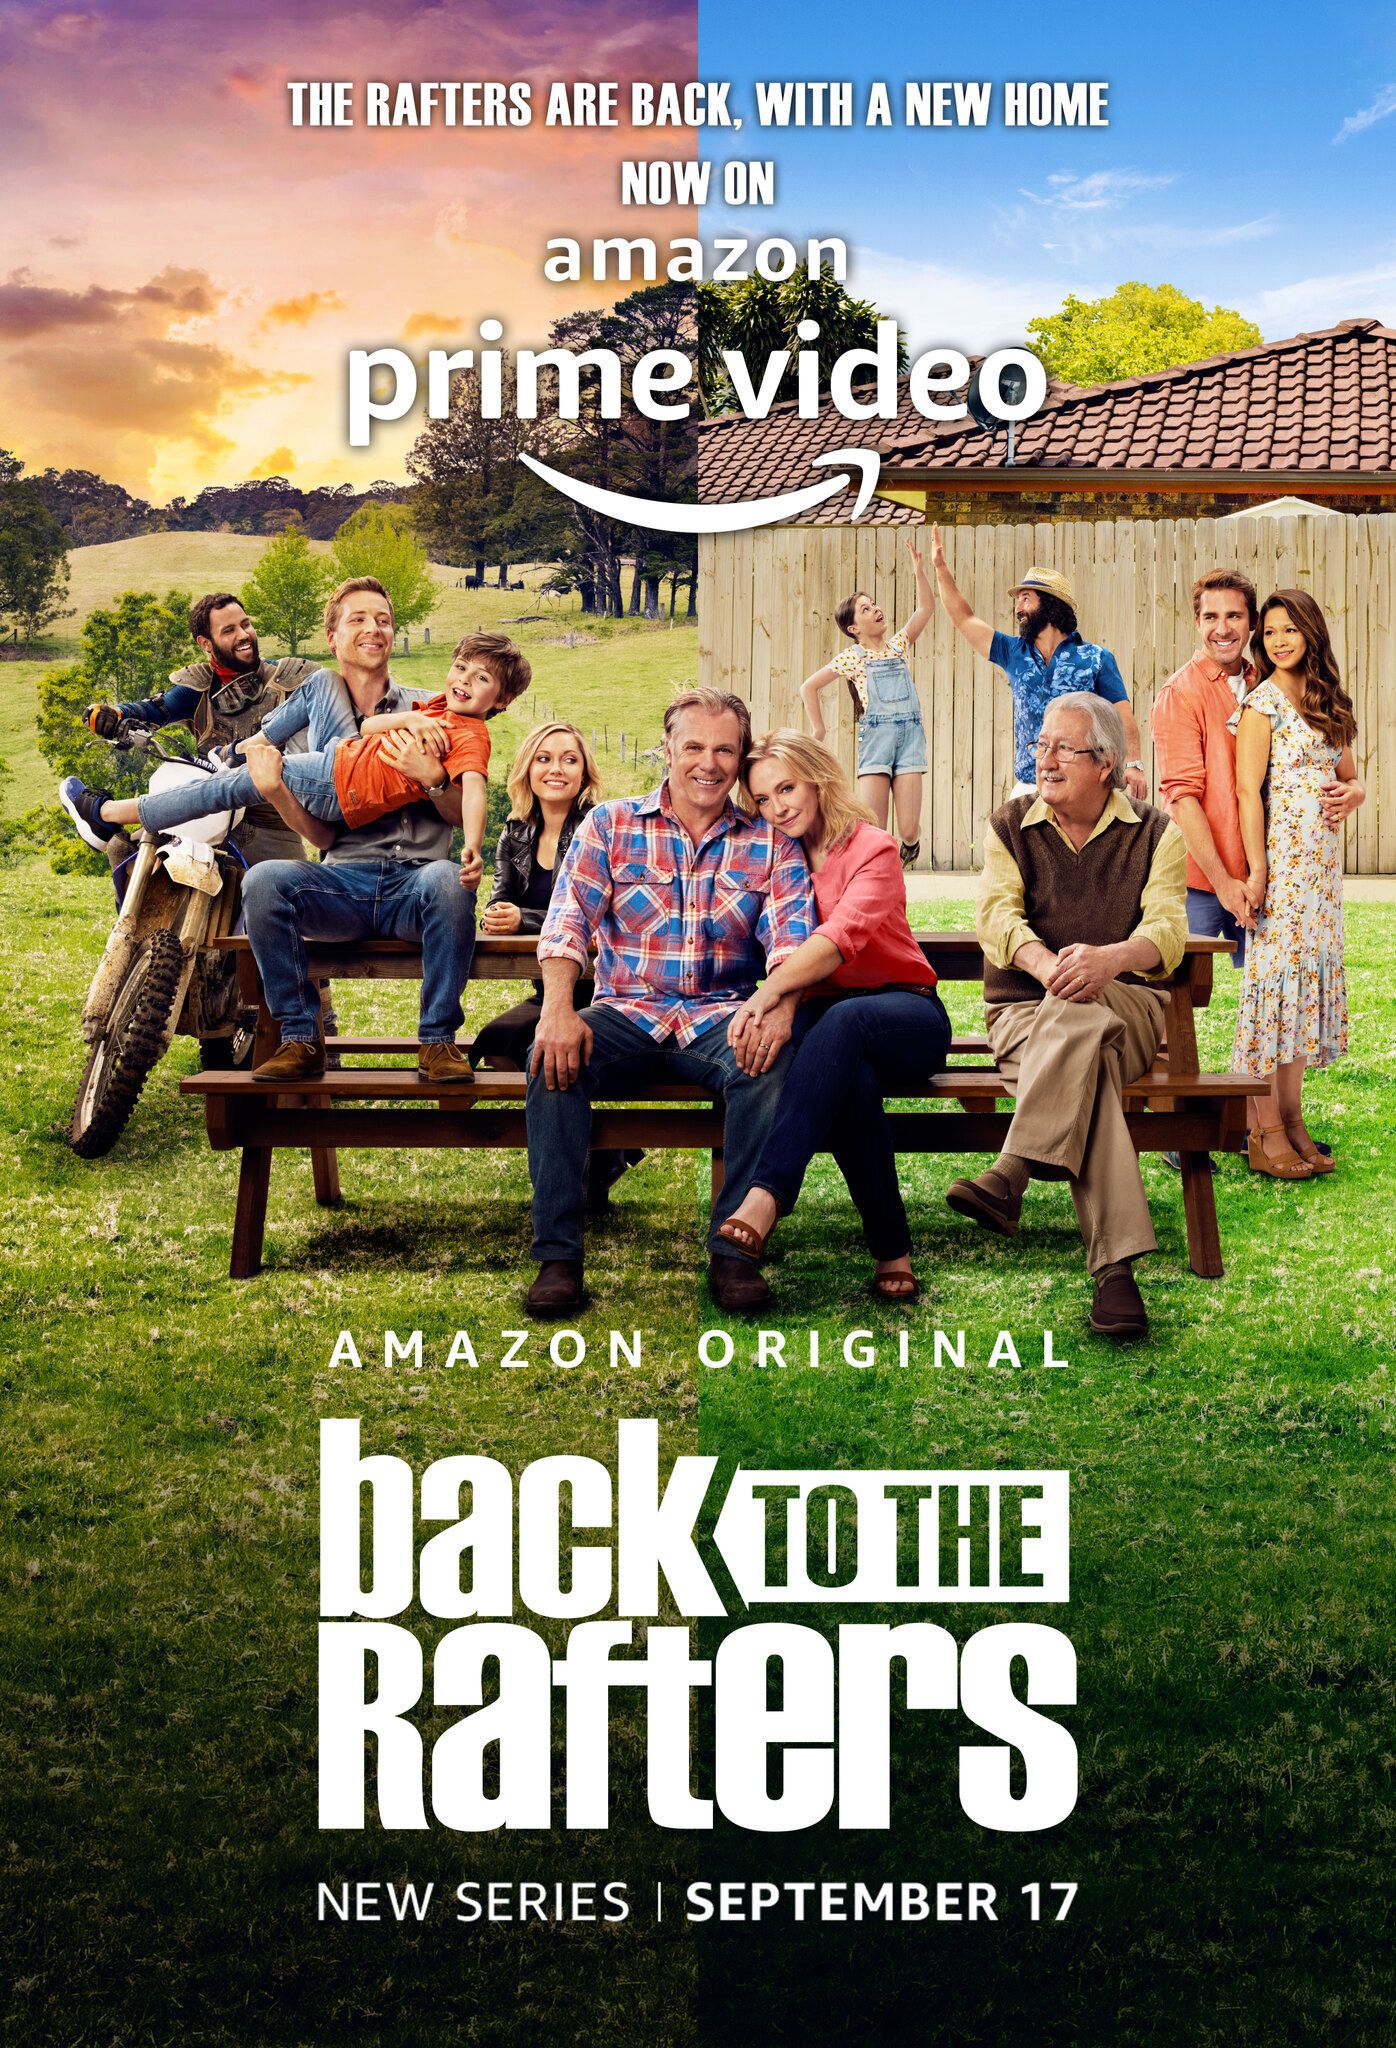 The poster for Back To The Rafters which shows the Rafter family and some new characters